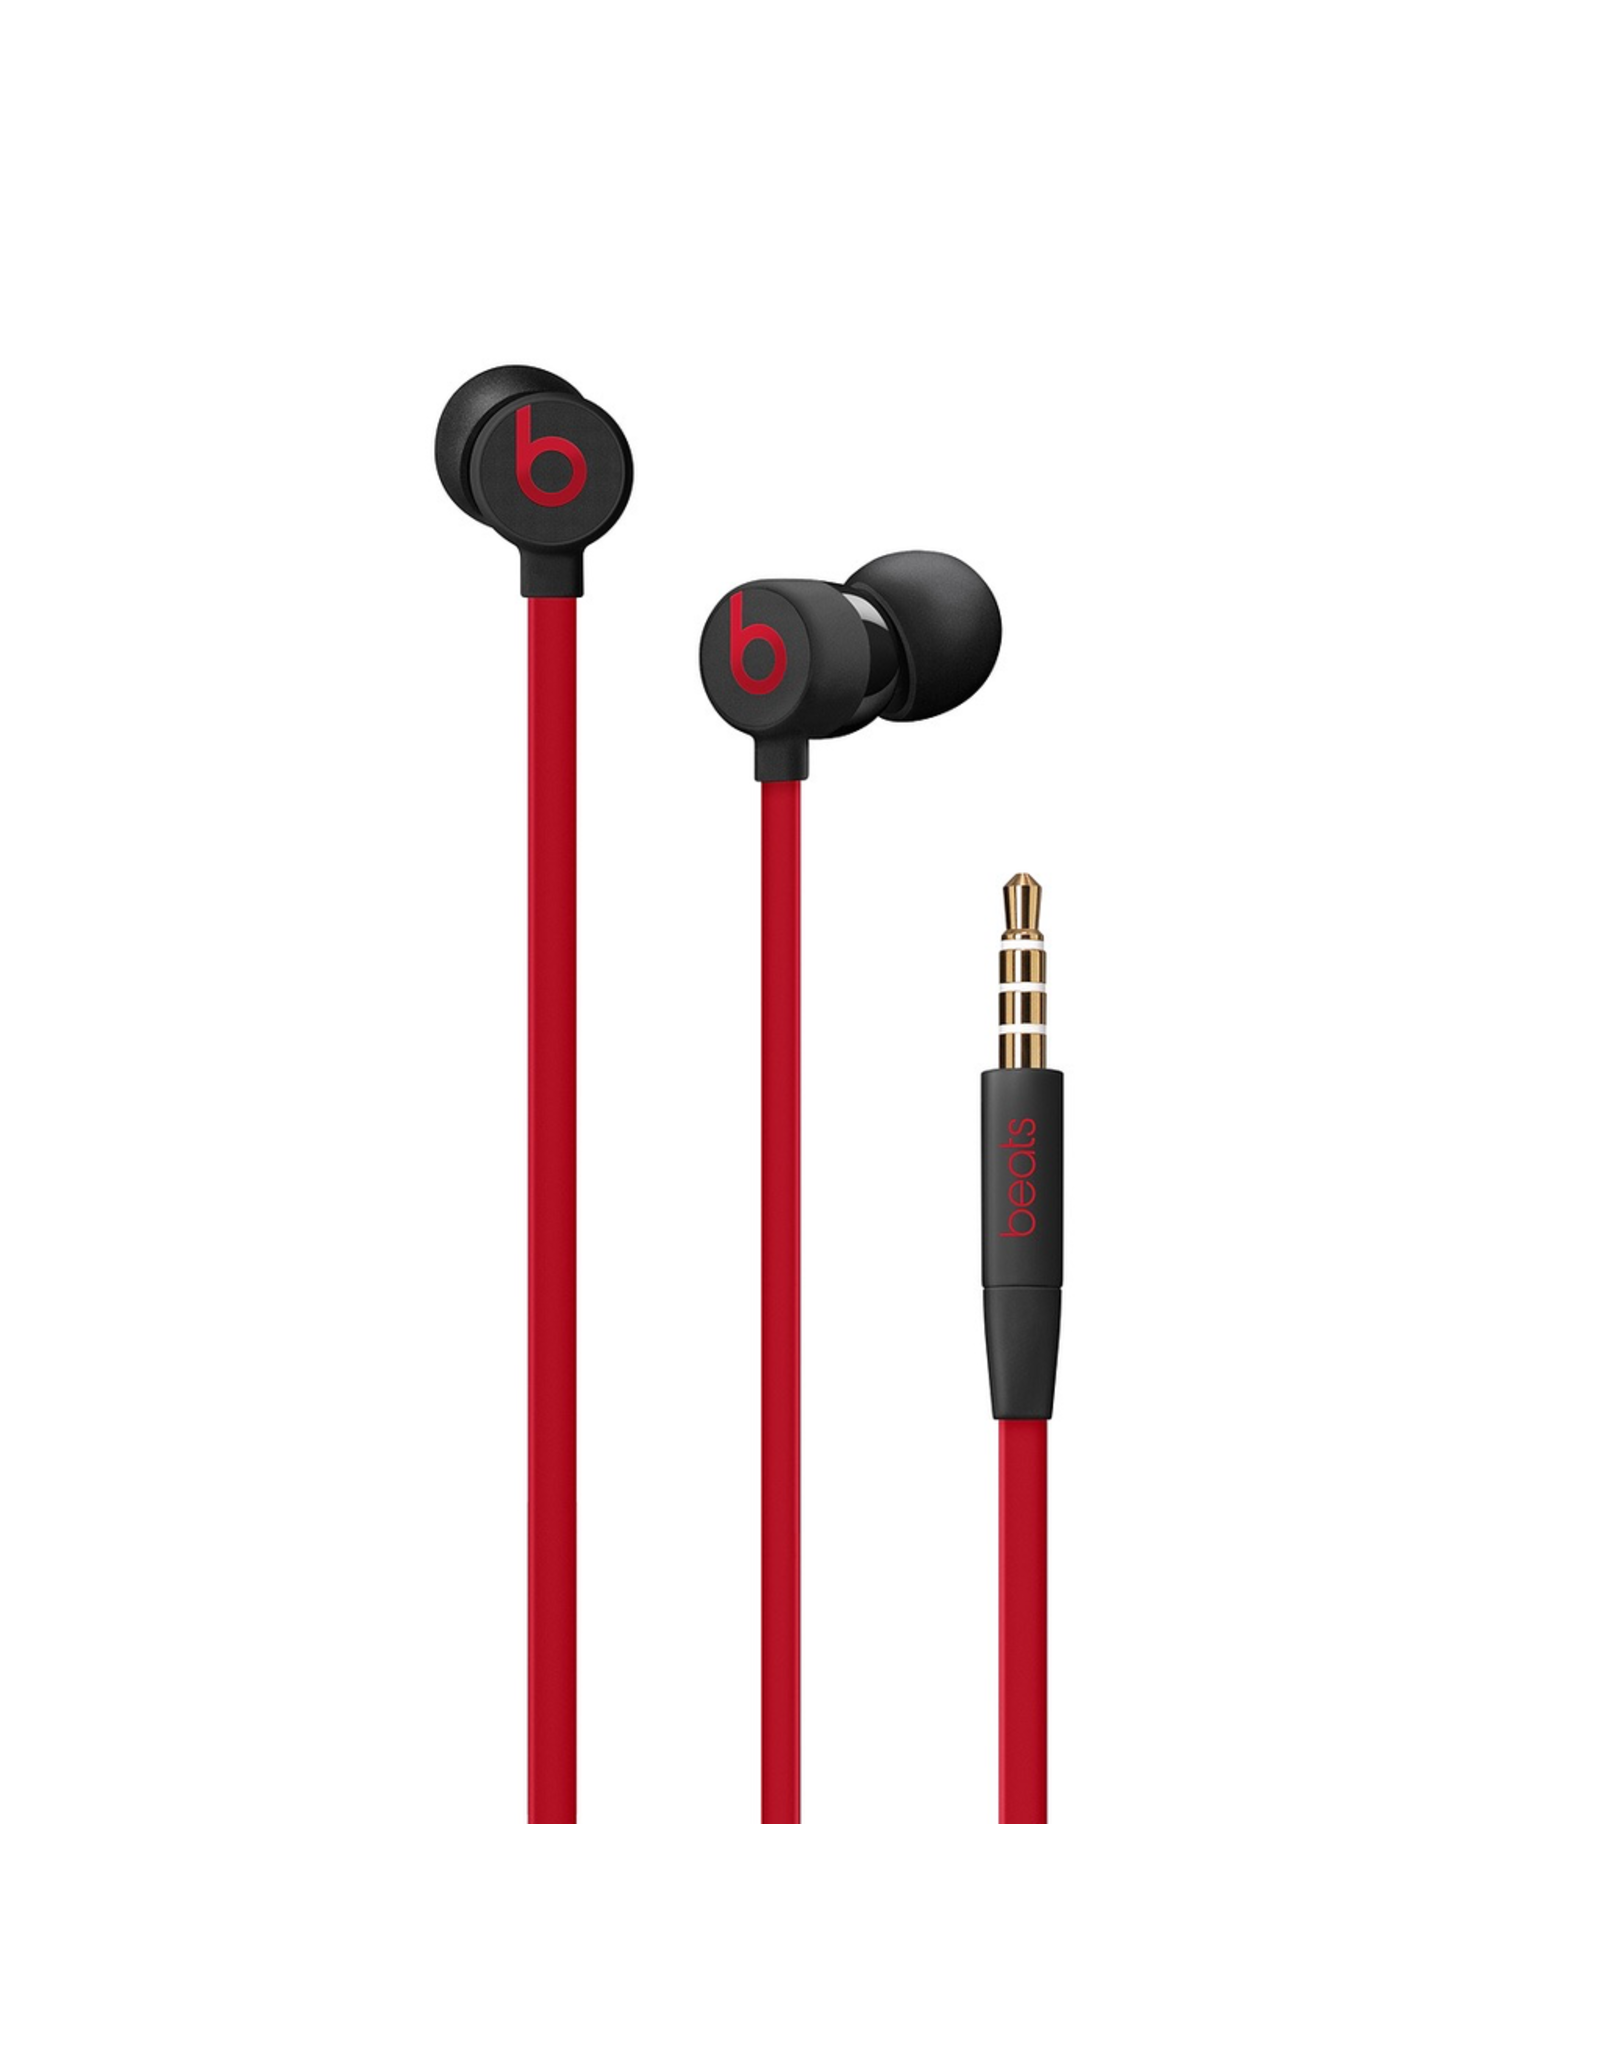 Beats Beats Urbeats3 Earphones With 3.5mm Plug - Decade Collection - Defiant Black-Red